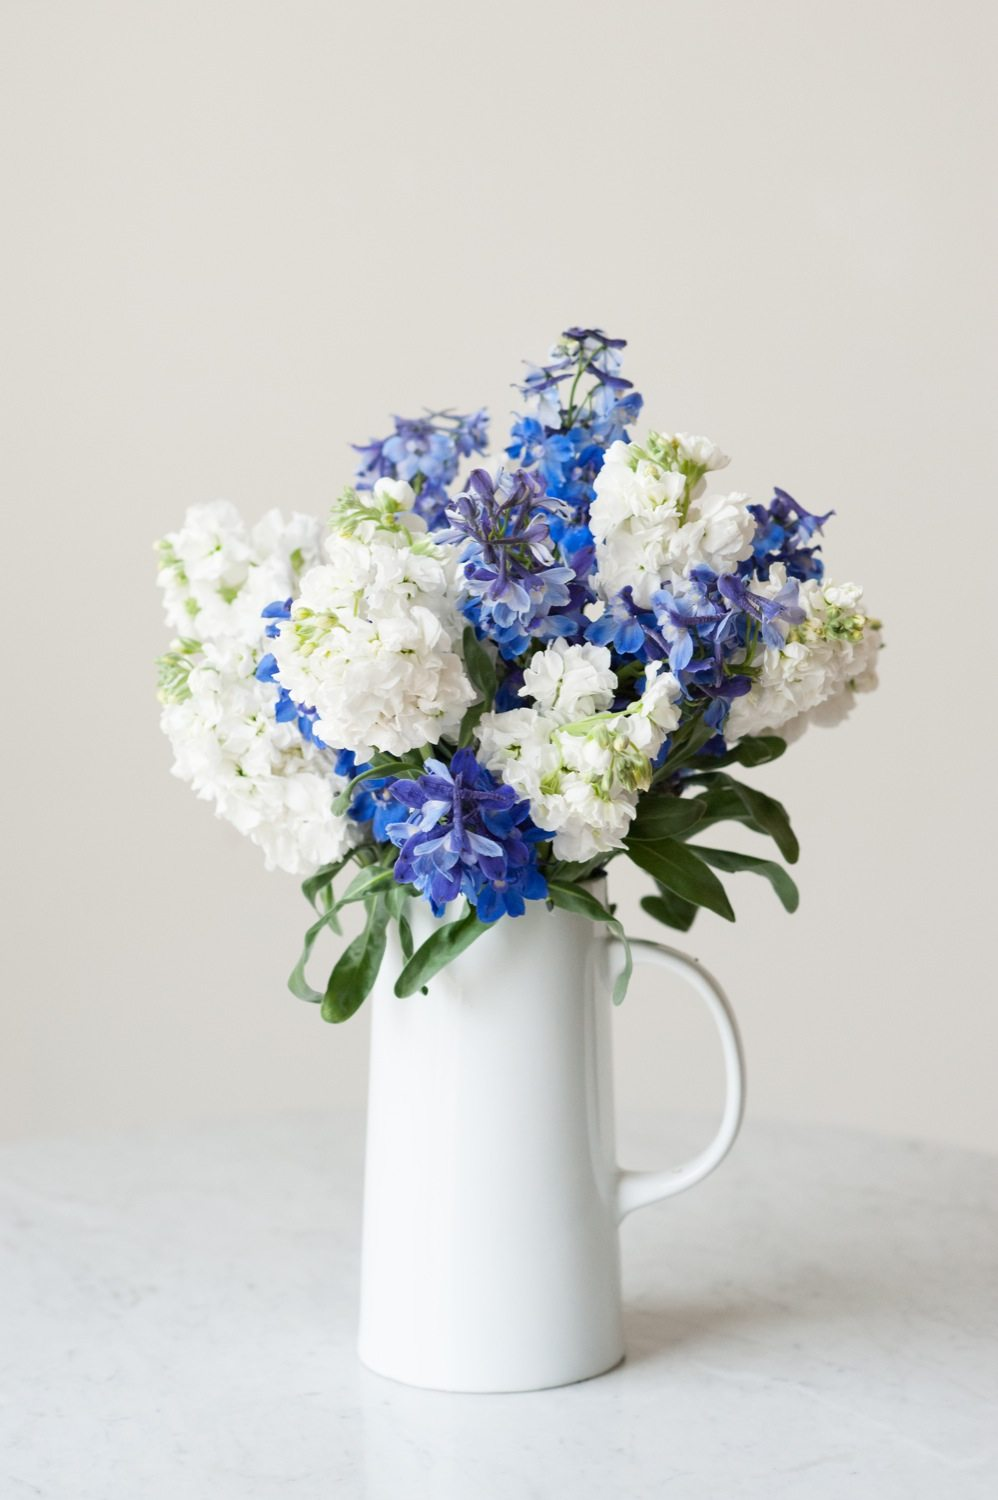 Diy Grocery Store Flower Arrangement The Sweetest Occasion